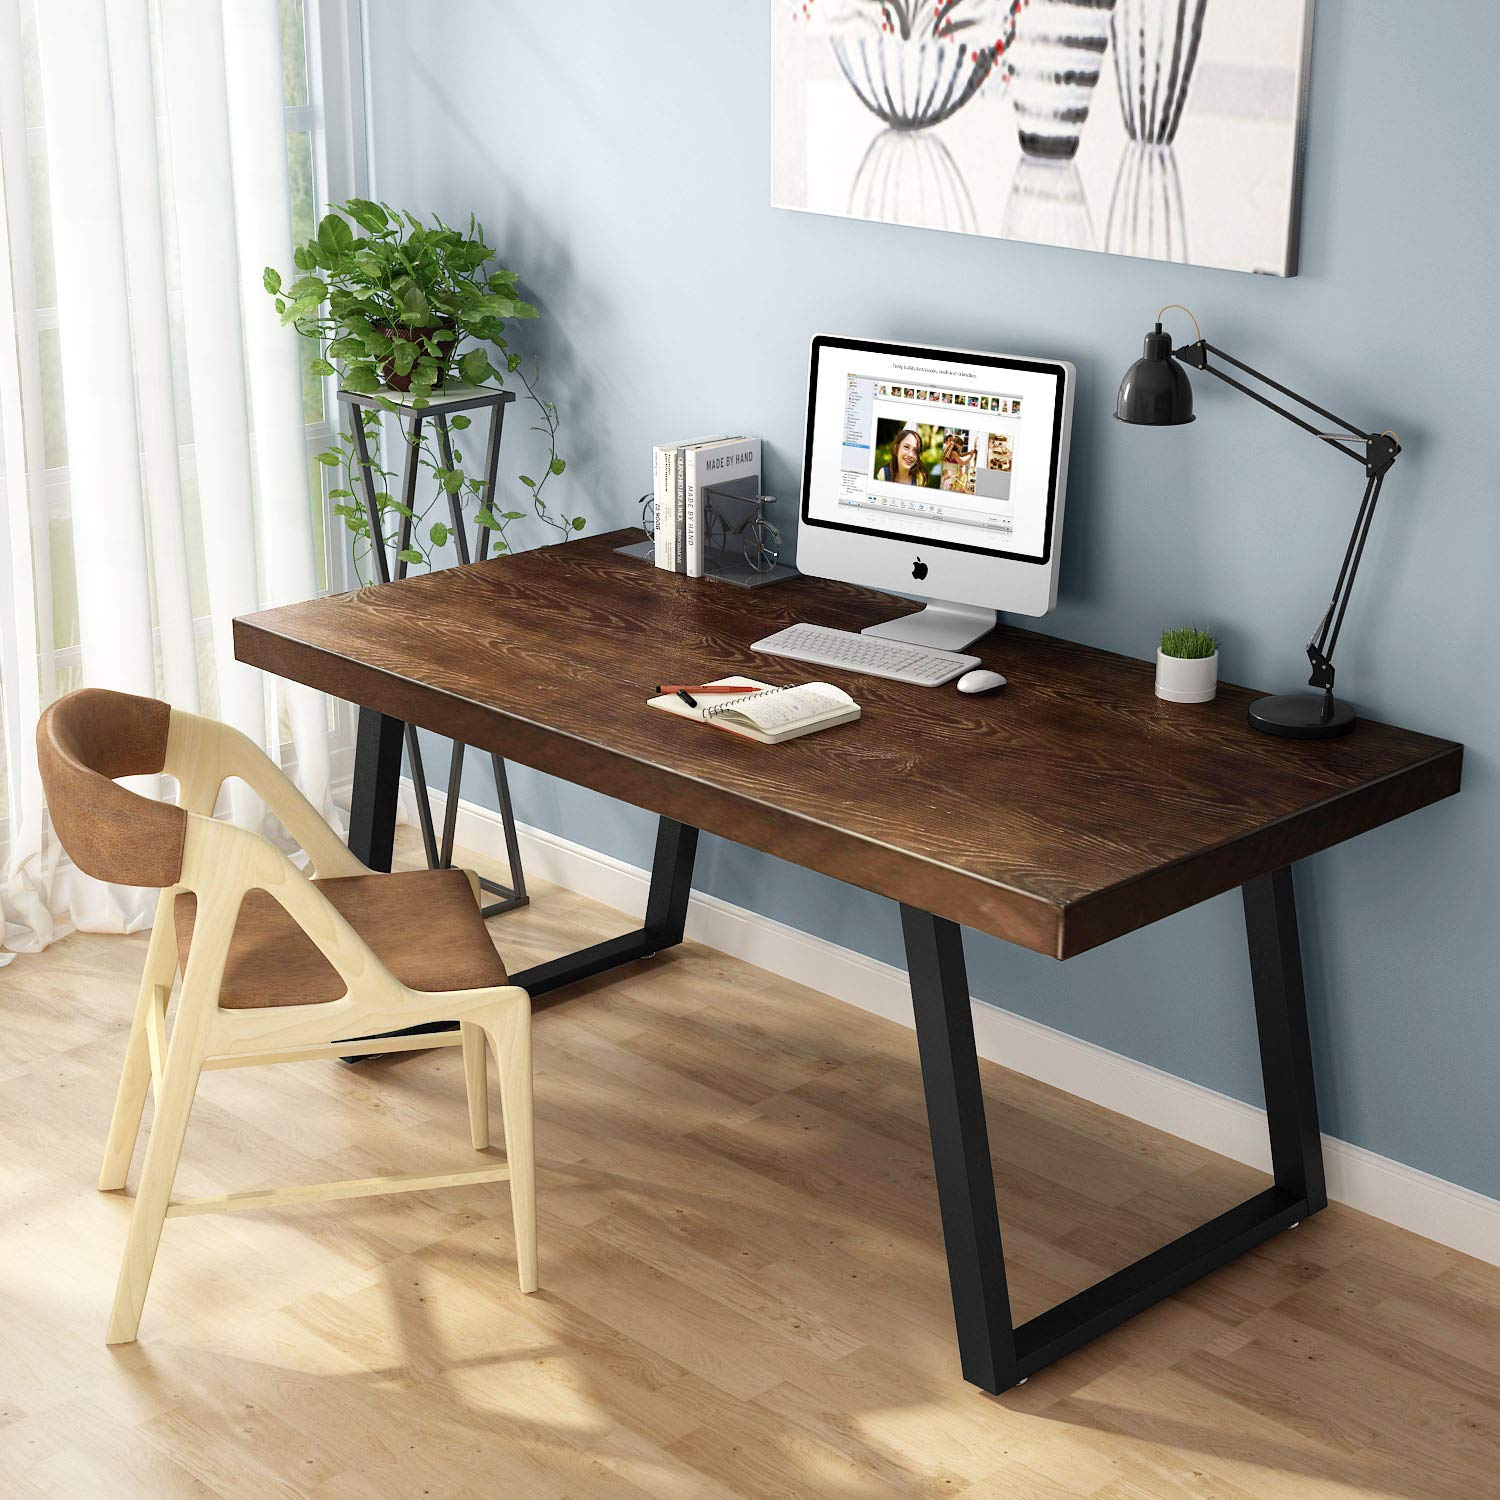 Tribesigns 55'' Rustic Computer Desk, Solid Wood Industrial Desk with Heavy-Duty Slanted Metal Base, Simple Retro Style Office Desk Workstation for Home Office (Espresso) by Tribesigns